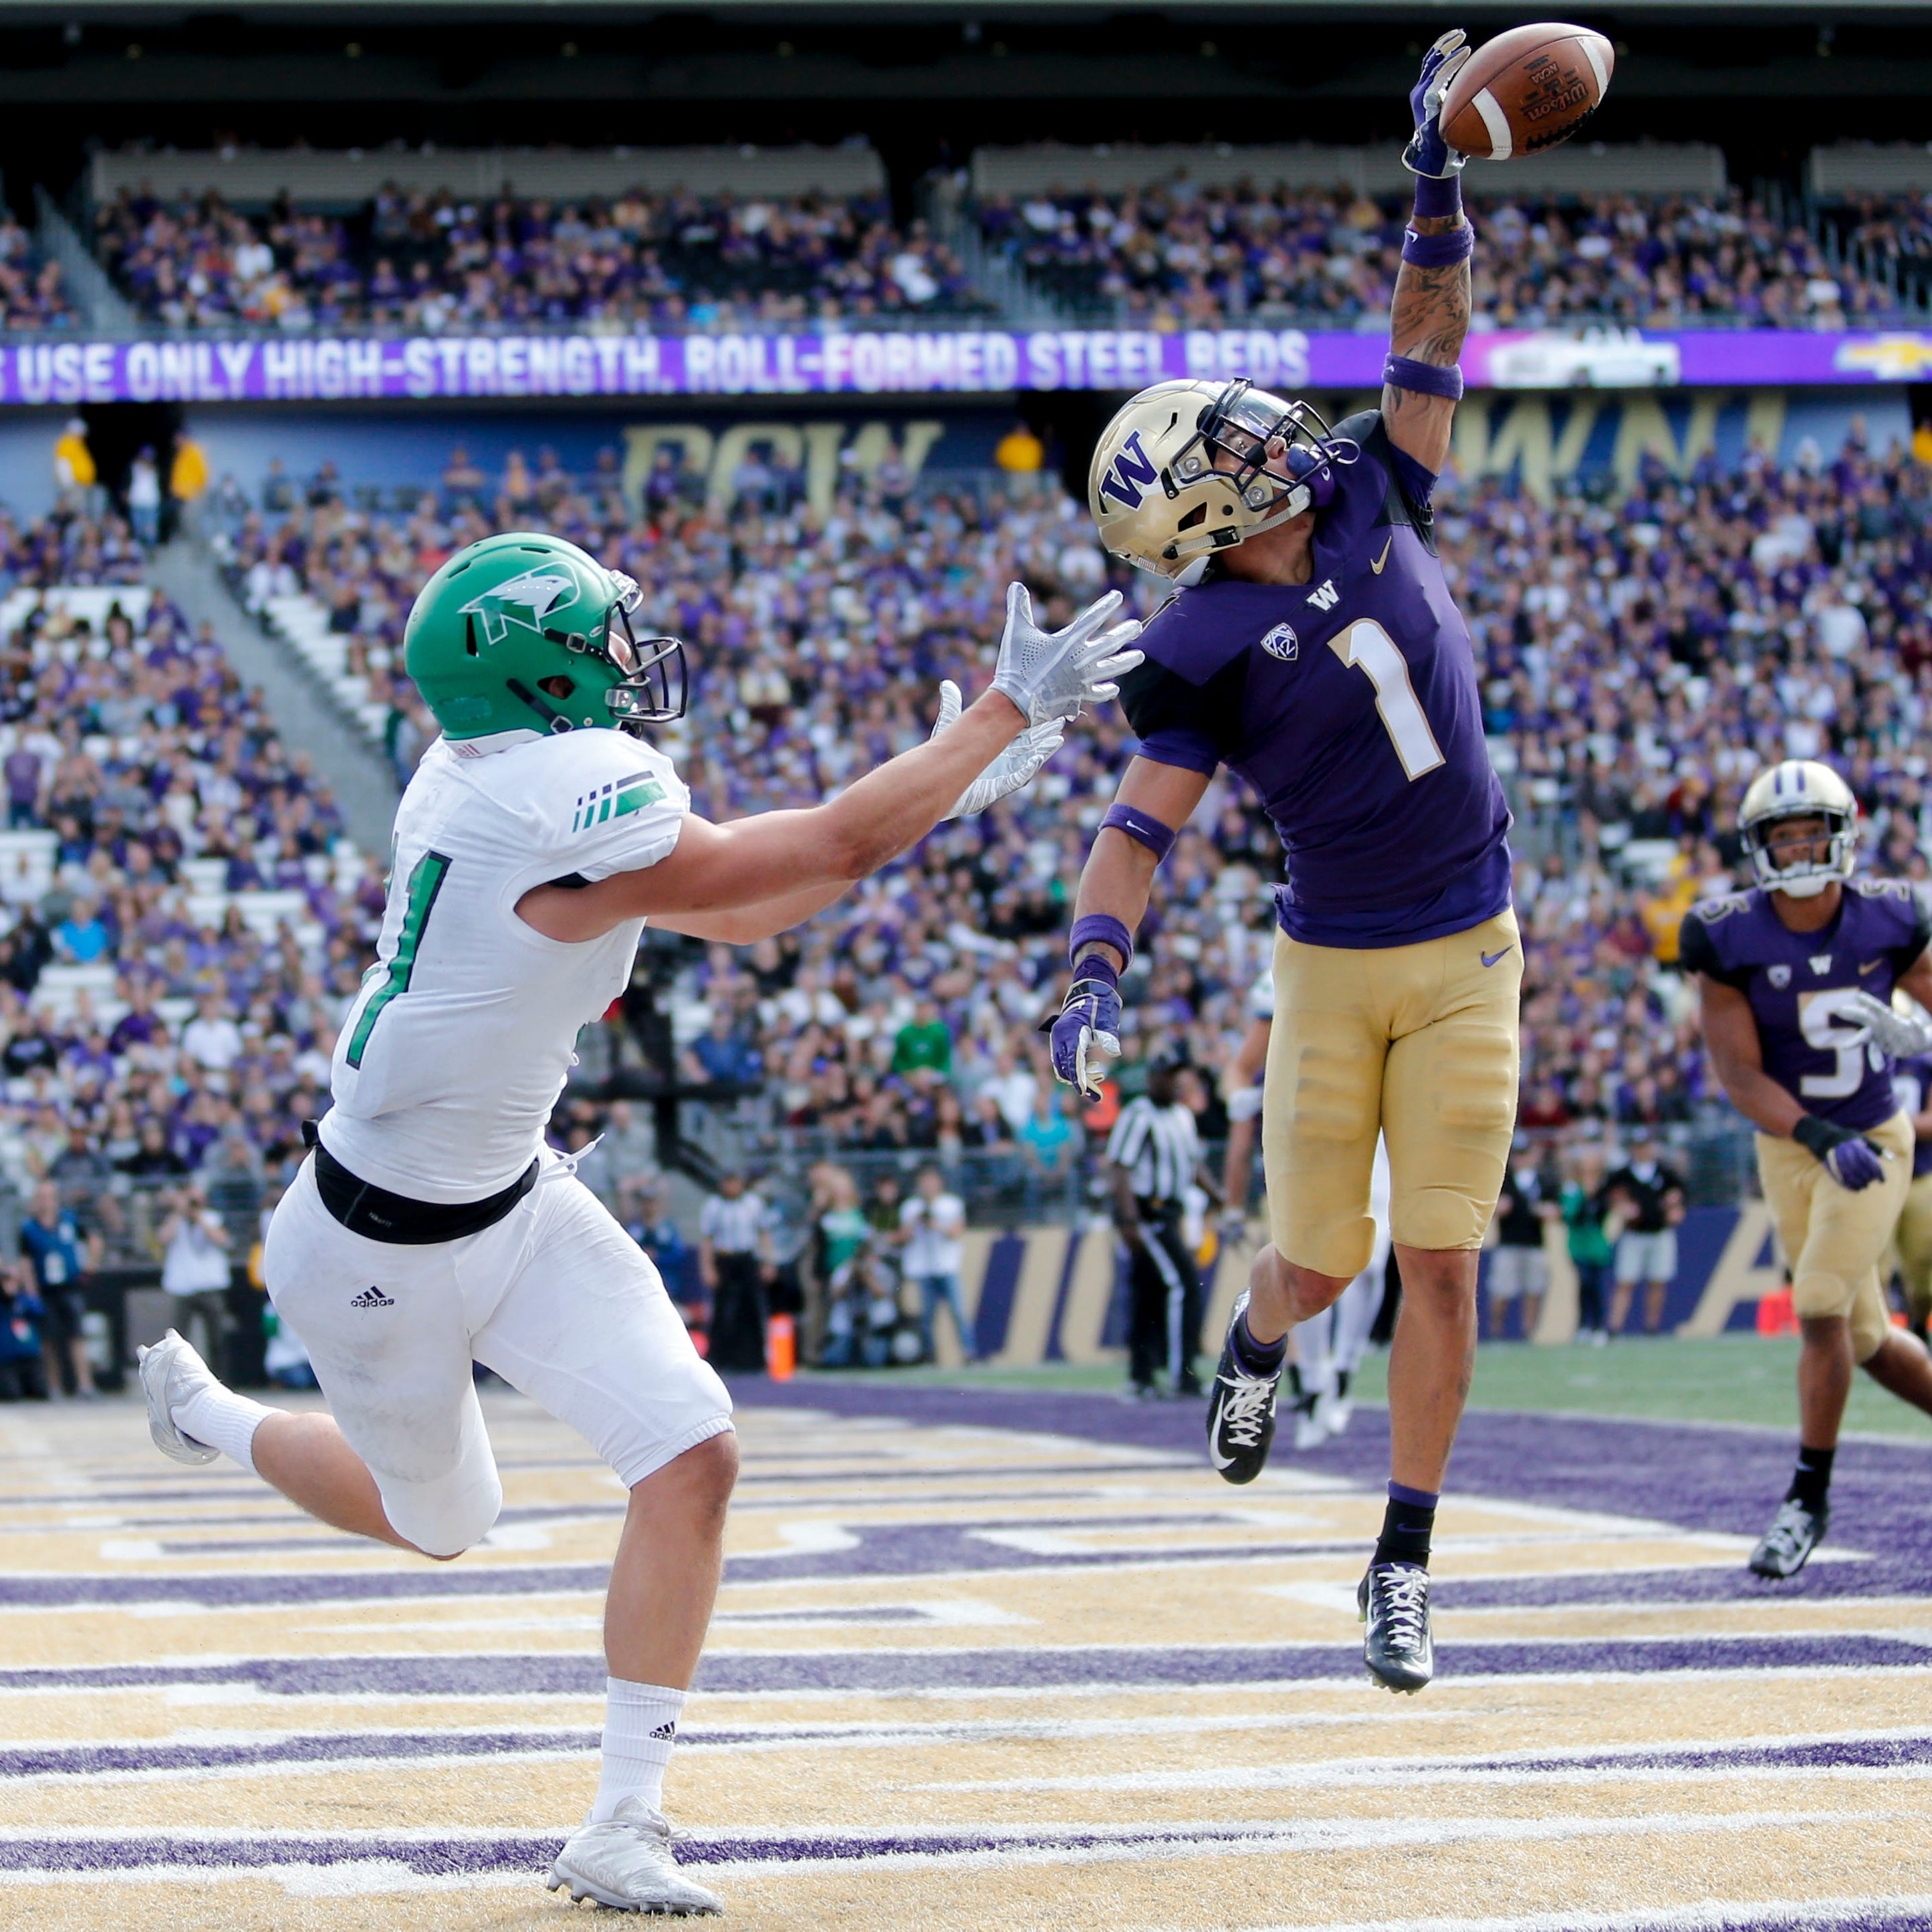 Byron Murphy to Arizona Cardinals at No. 33? He's a 'heavy favorite,' report says